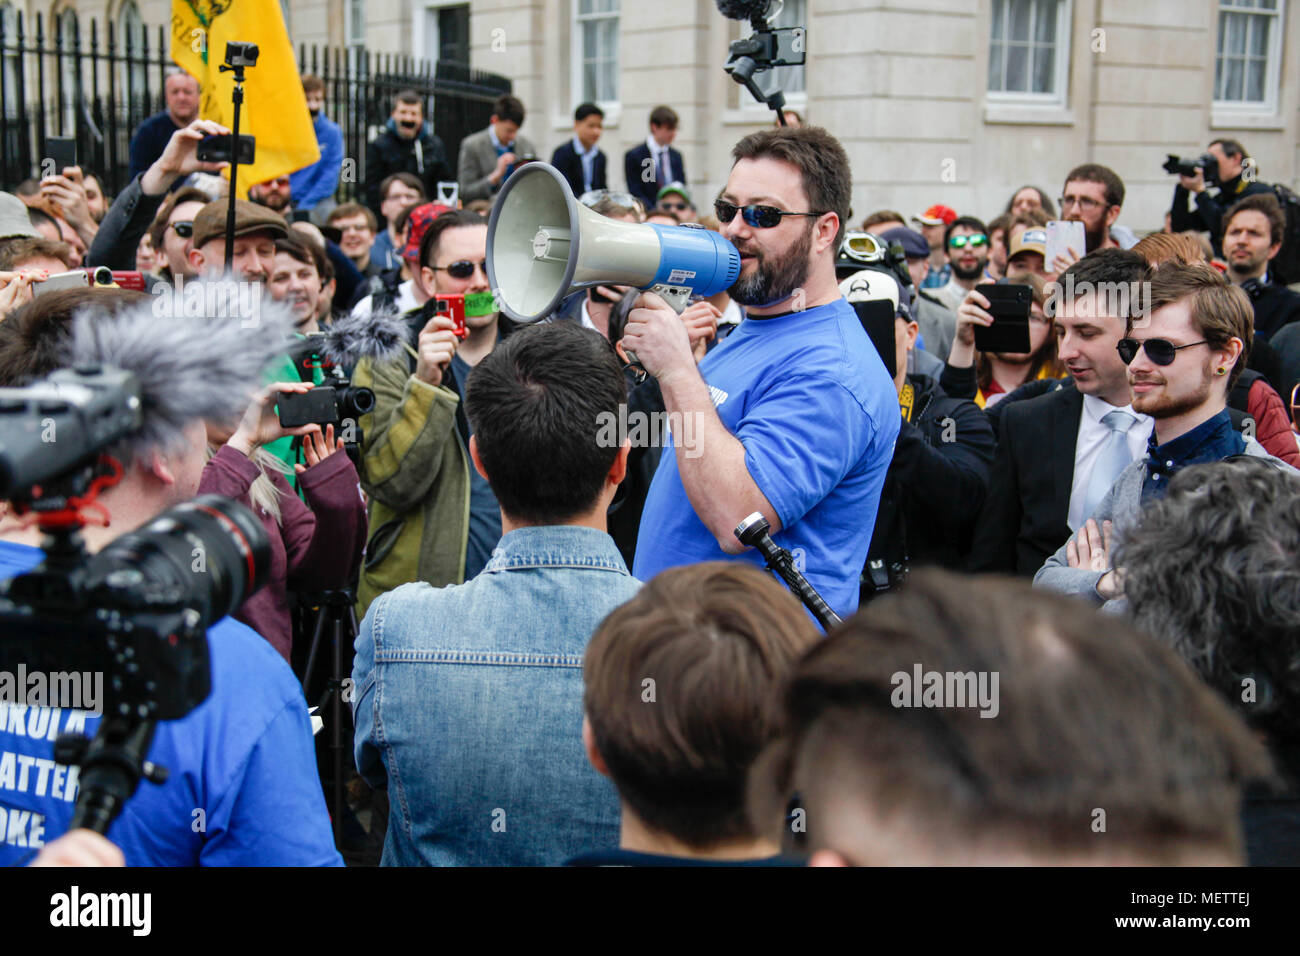 London, UK. 23rd April, 2018. Right-wing Youtuber Sargon of Akkad Supports Count Dankula Credit: Alex Cavendish/Alamy Live News - Stock Image